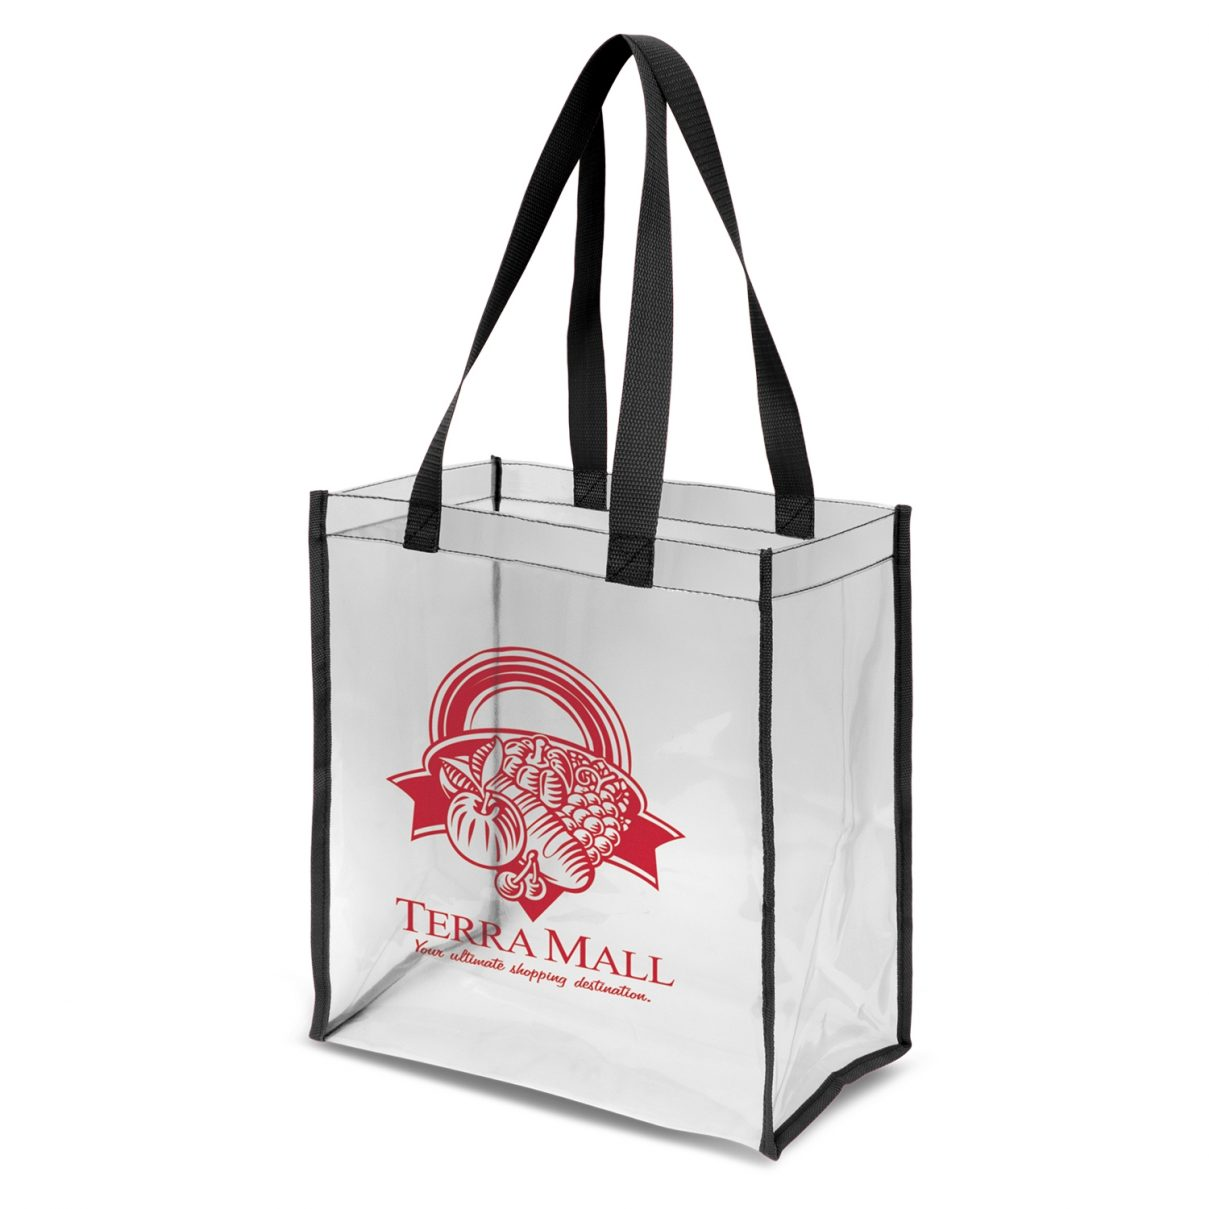 Clarity Tote Bag Bulk Supplier